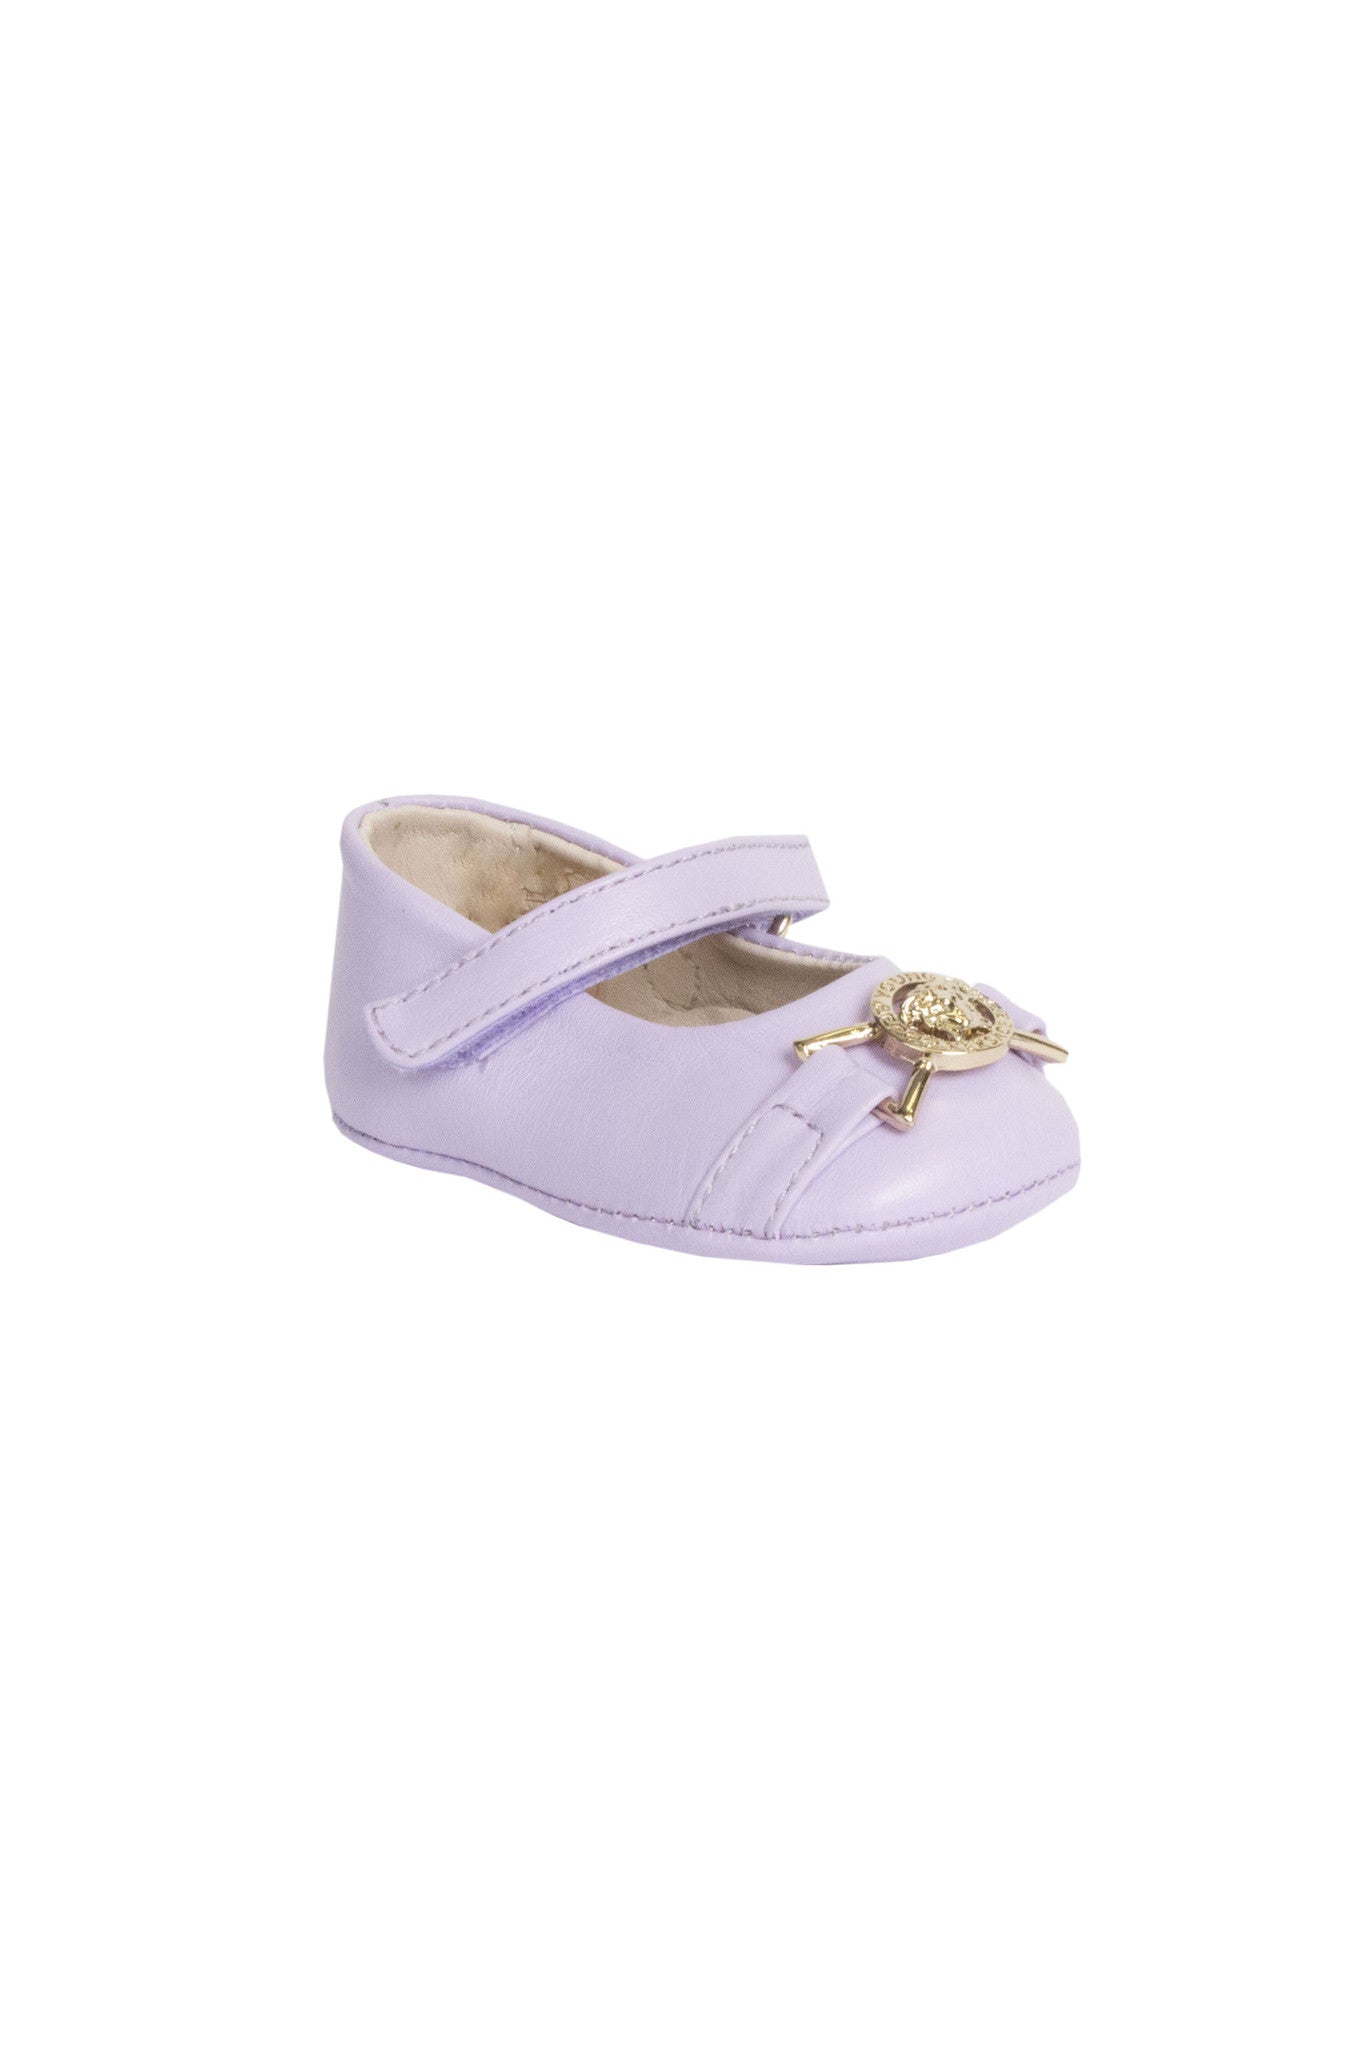 Girls Leather Pre-Walker Shoes-Lilac